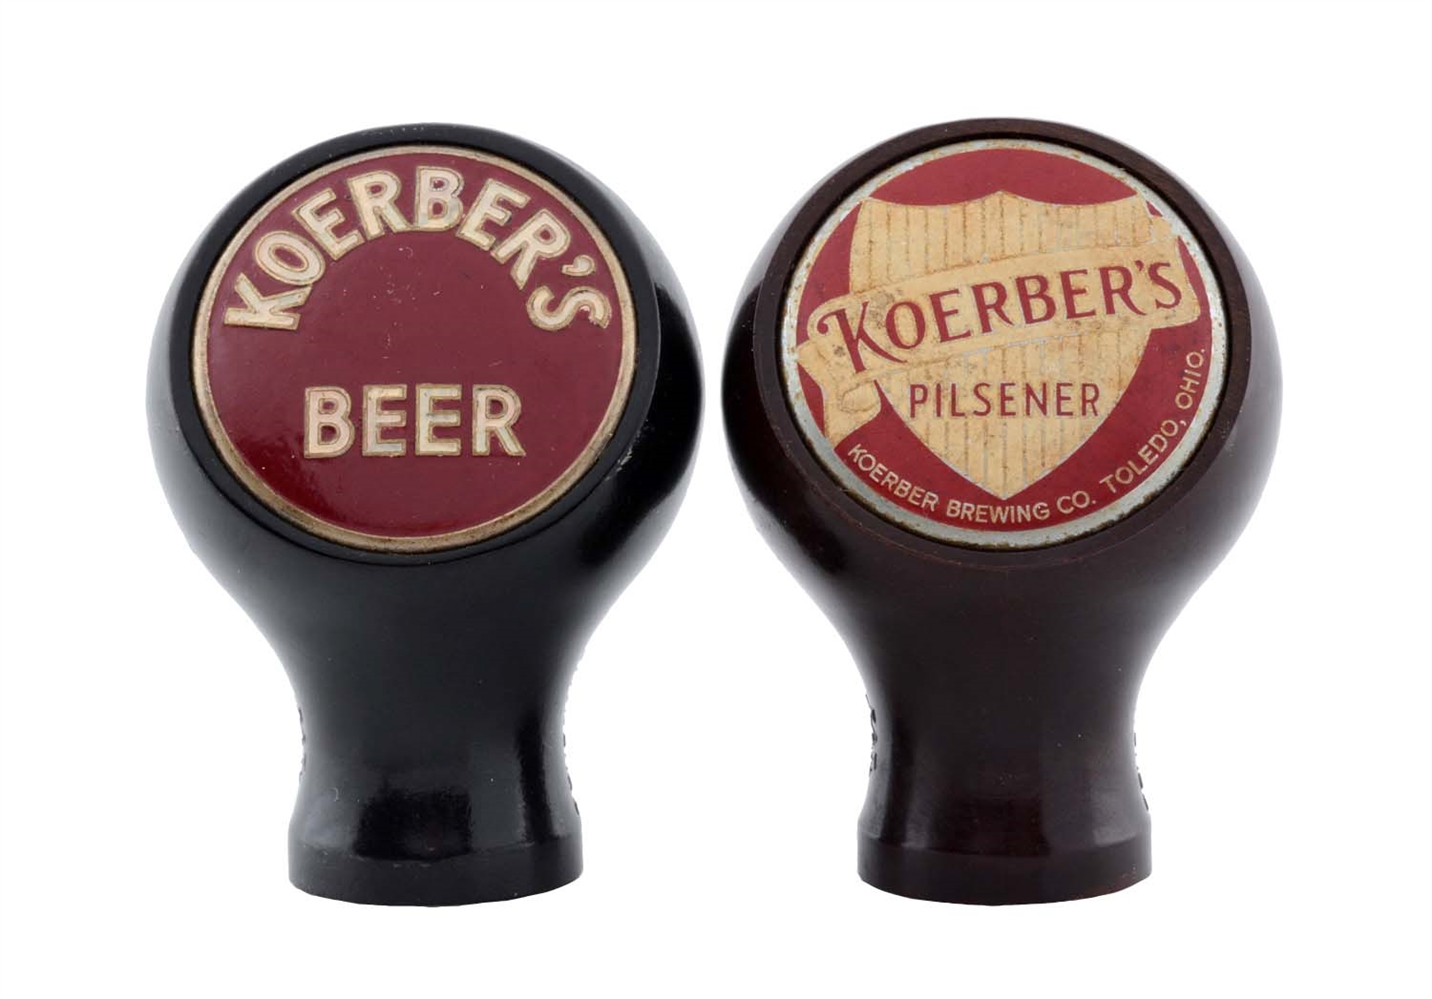 Lot Of 2: Koerbers Beer Tap Knobs.